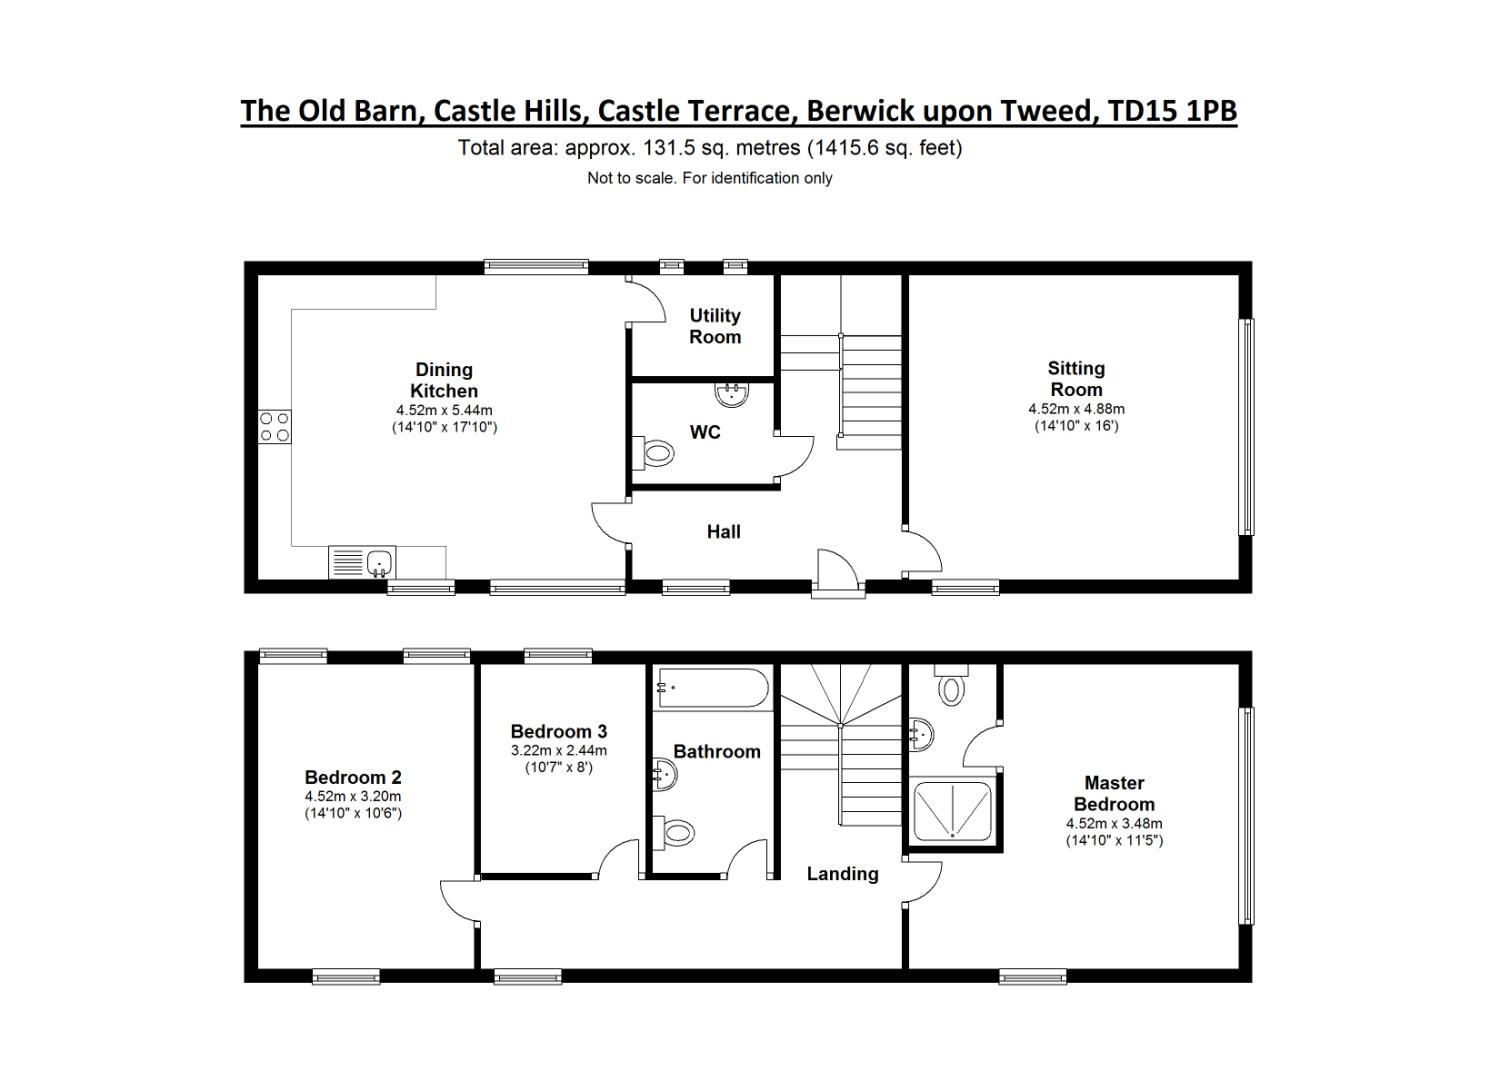 Floorplans for Castle Hills, Berwick-upon-Tweed, Northumberland, TD15